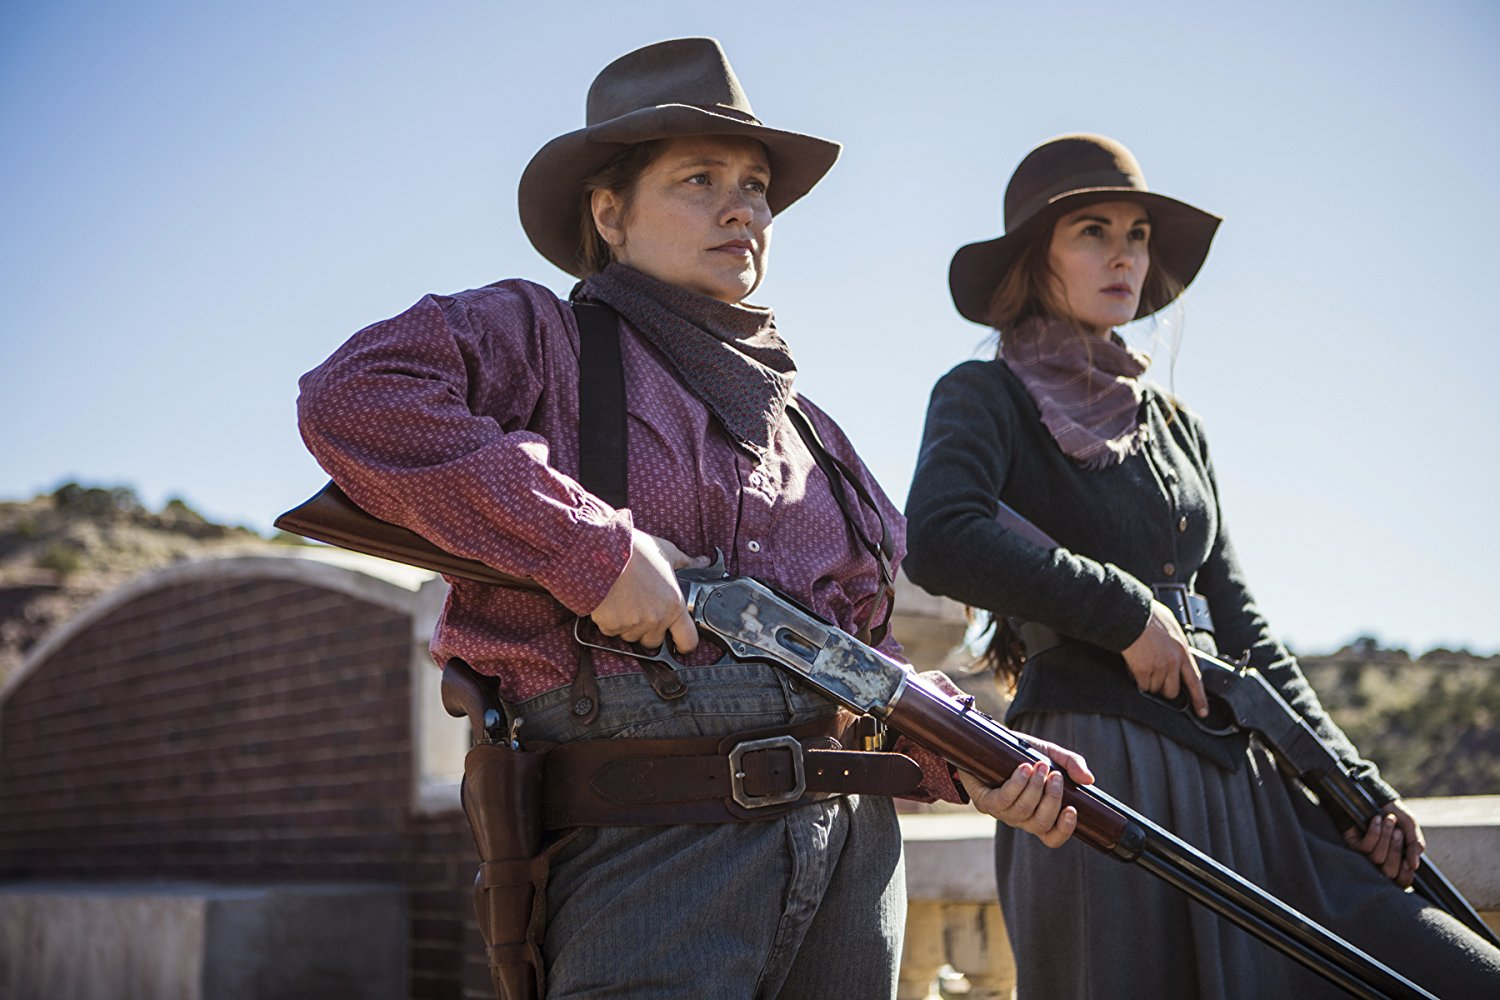 Two women in cowboy attire, holding shotguns.